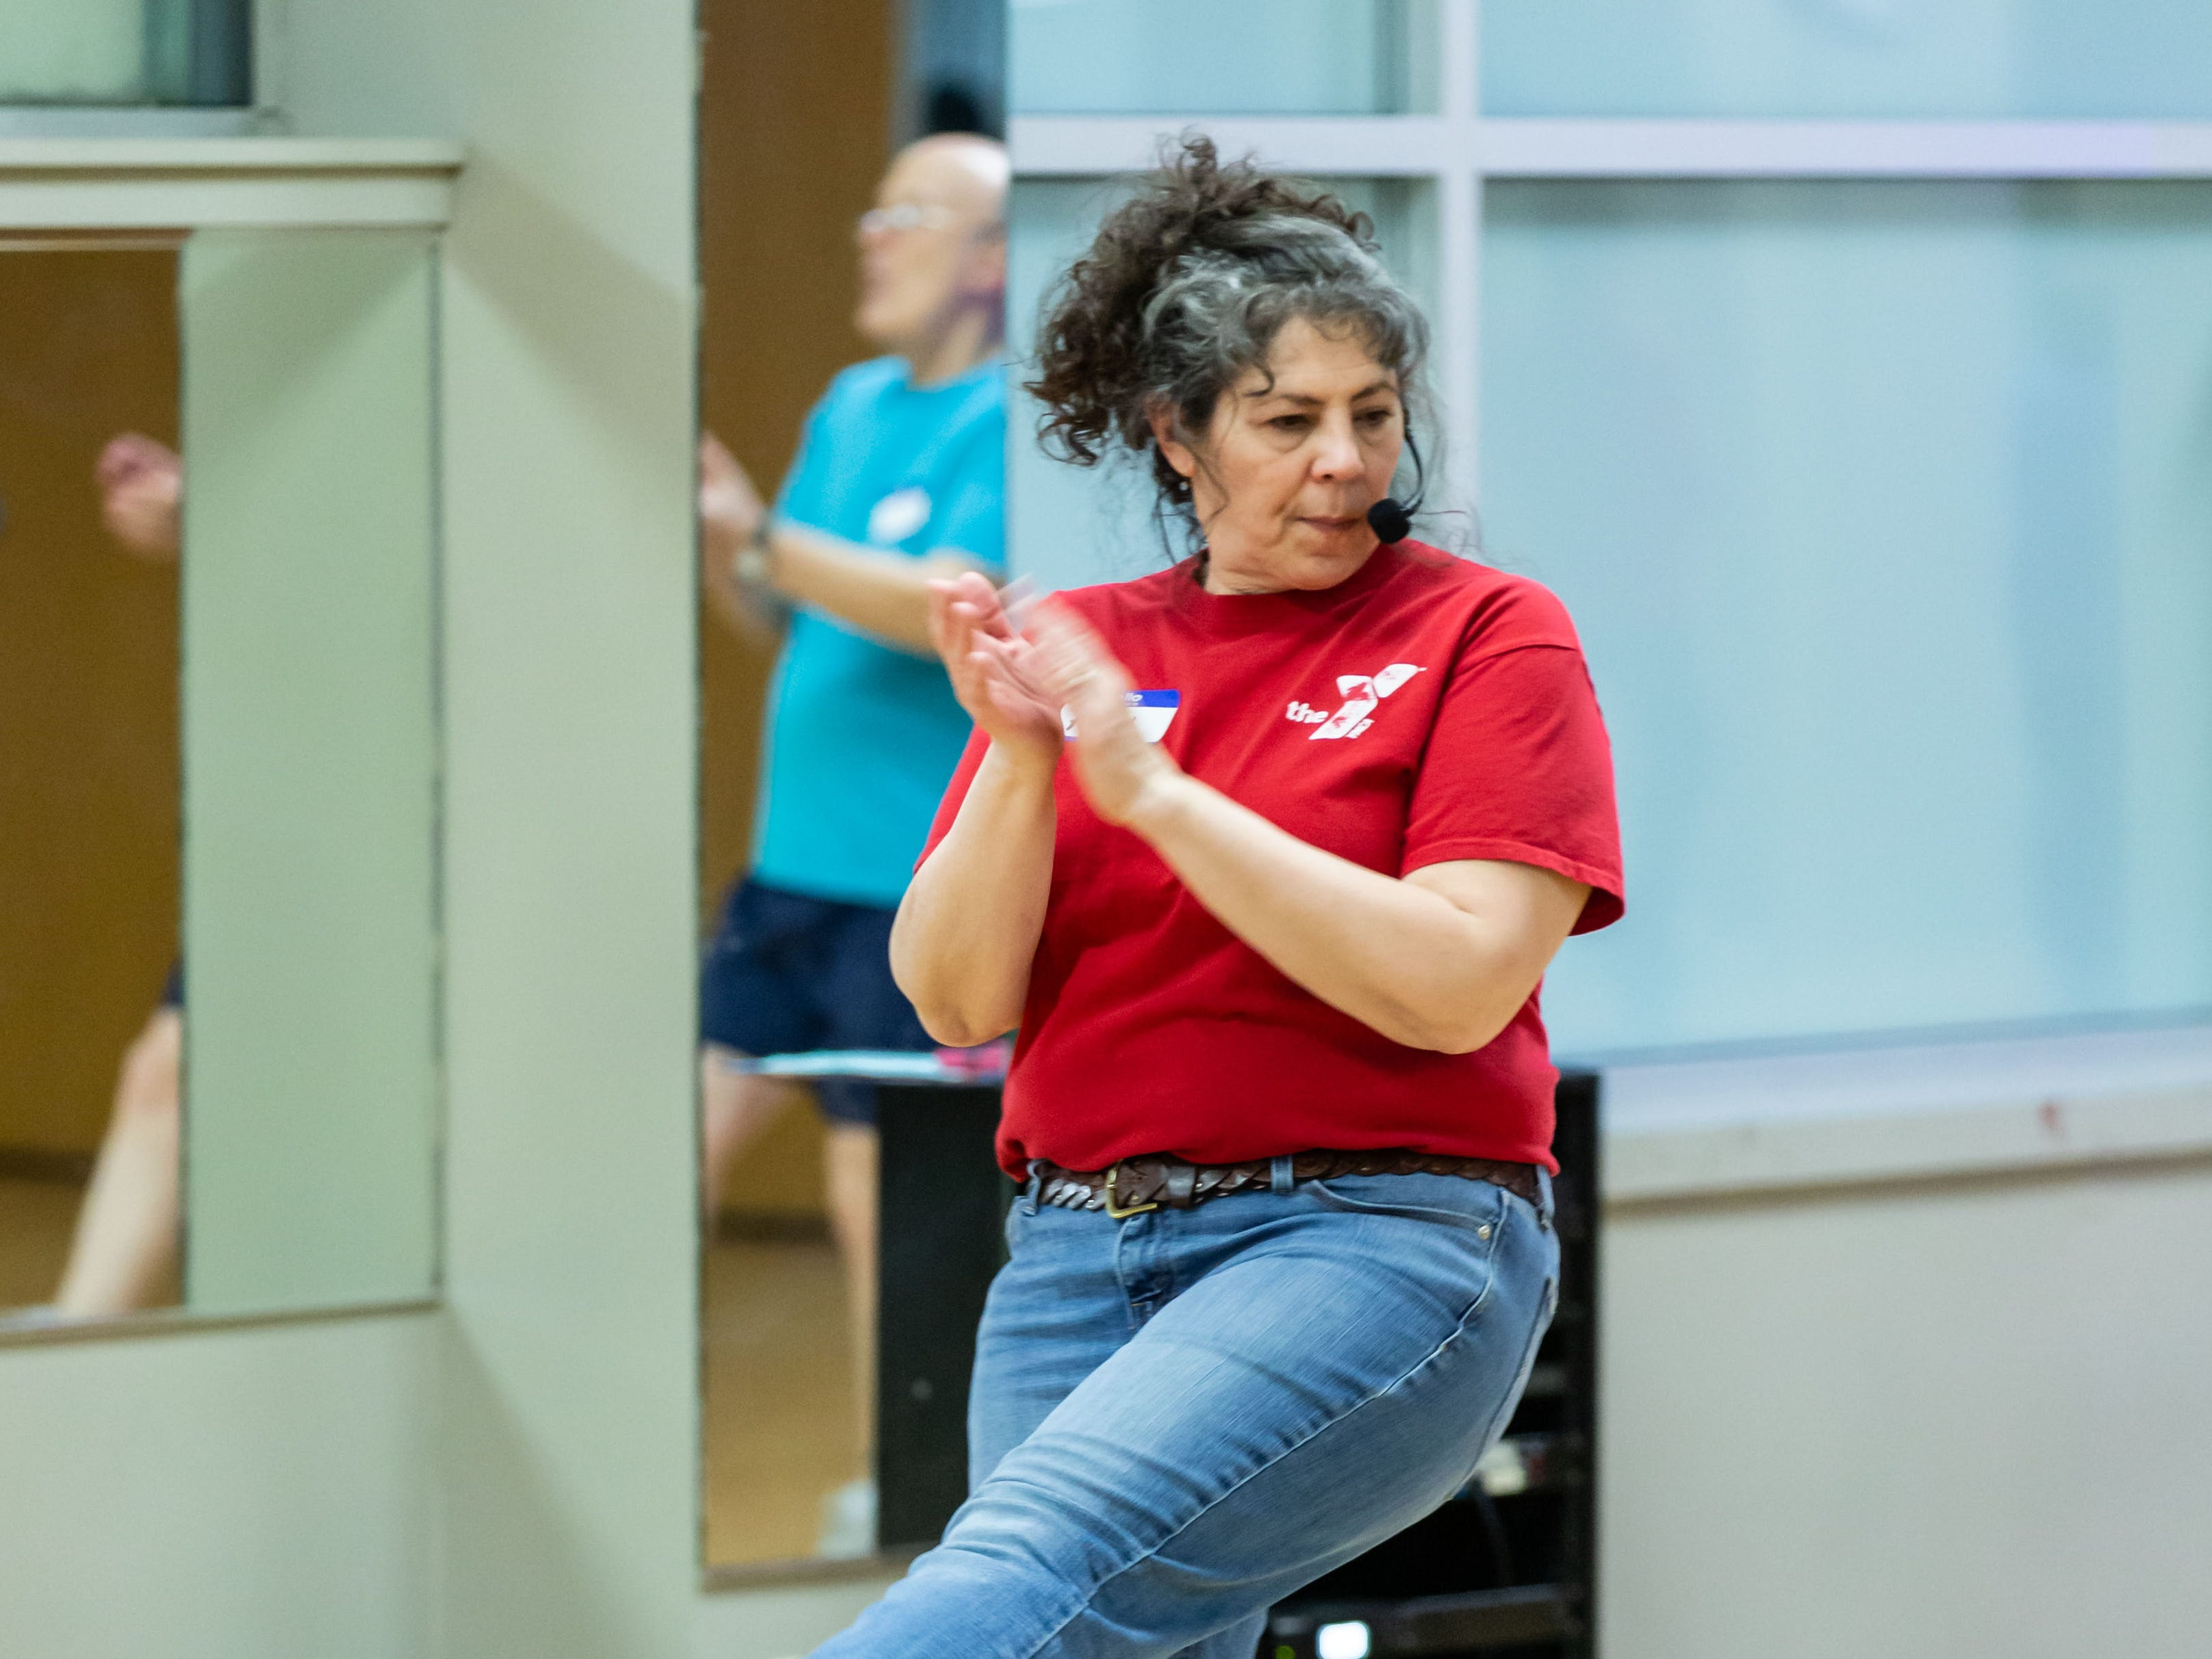 YMCA Instructor Polly Oldenburg teaches a line dancing routine during the Hometown Hoedown NEA Big-Read Kickoff Event at the Tri County YMCA in Menomonee Falls on Saturday, Feb. 23, 2019. The event featured live music, food, games, and western themed activities for the whole family.